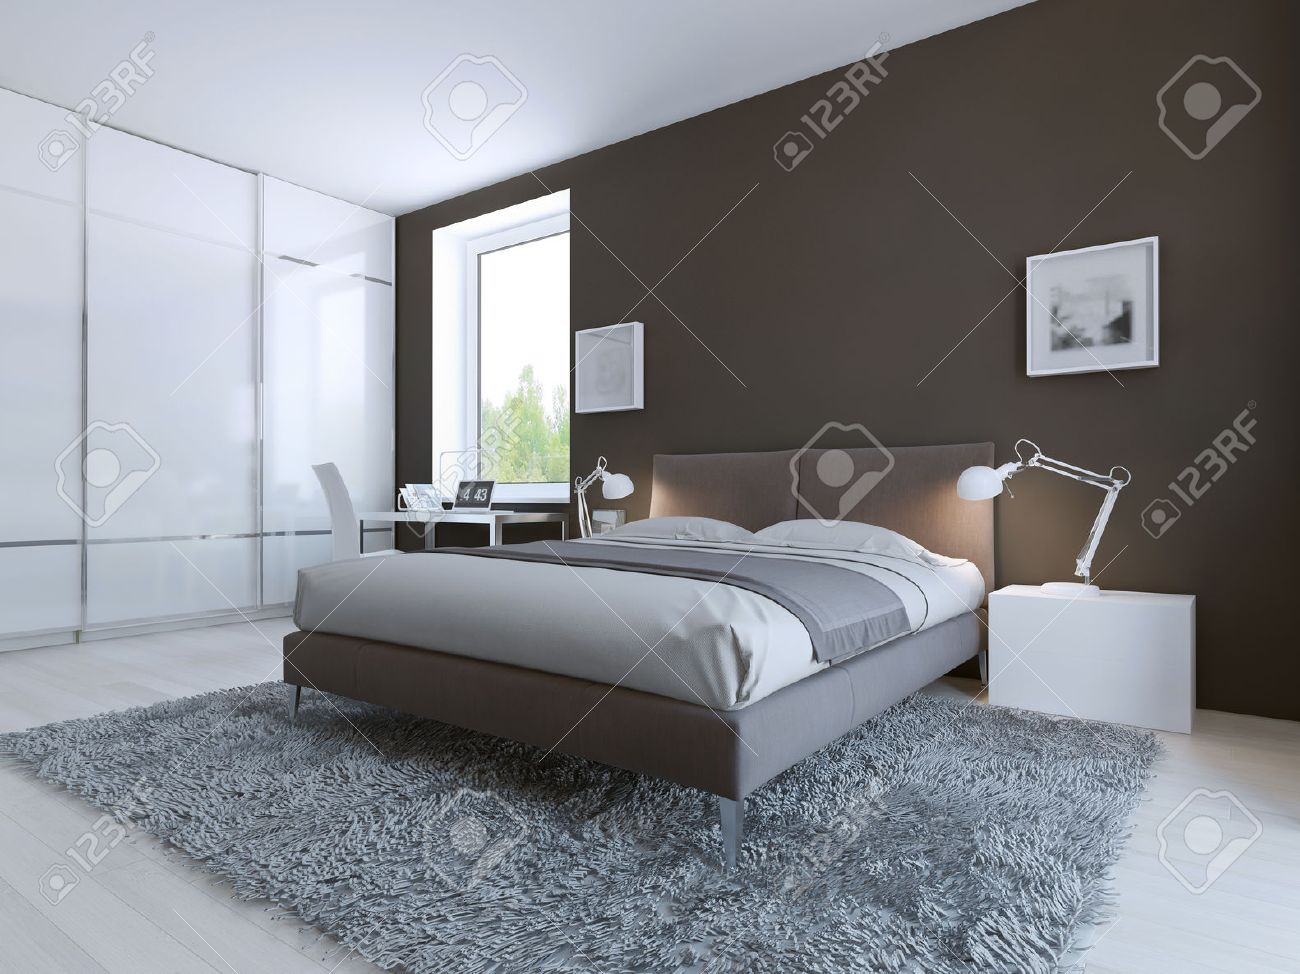 Bodenbelag Schlafzimmer Stock Photo